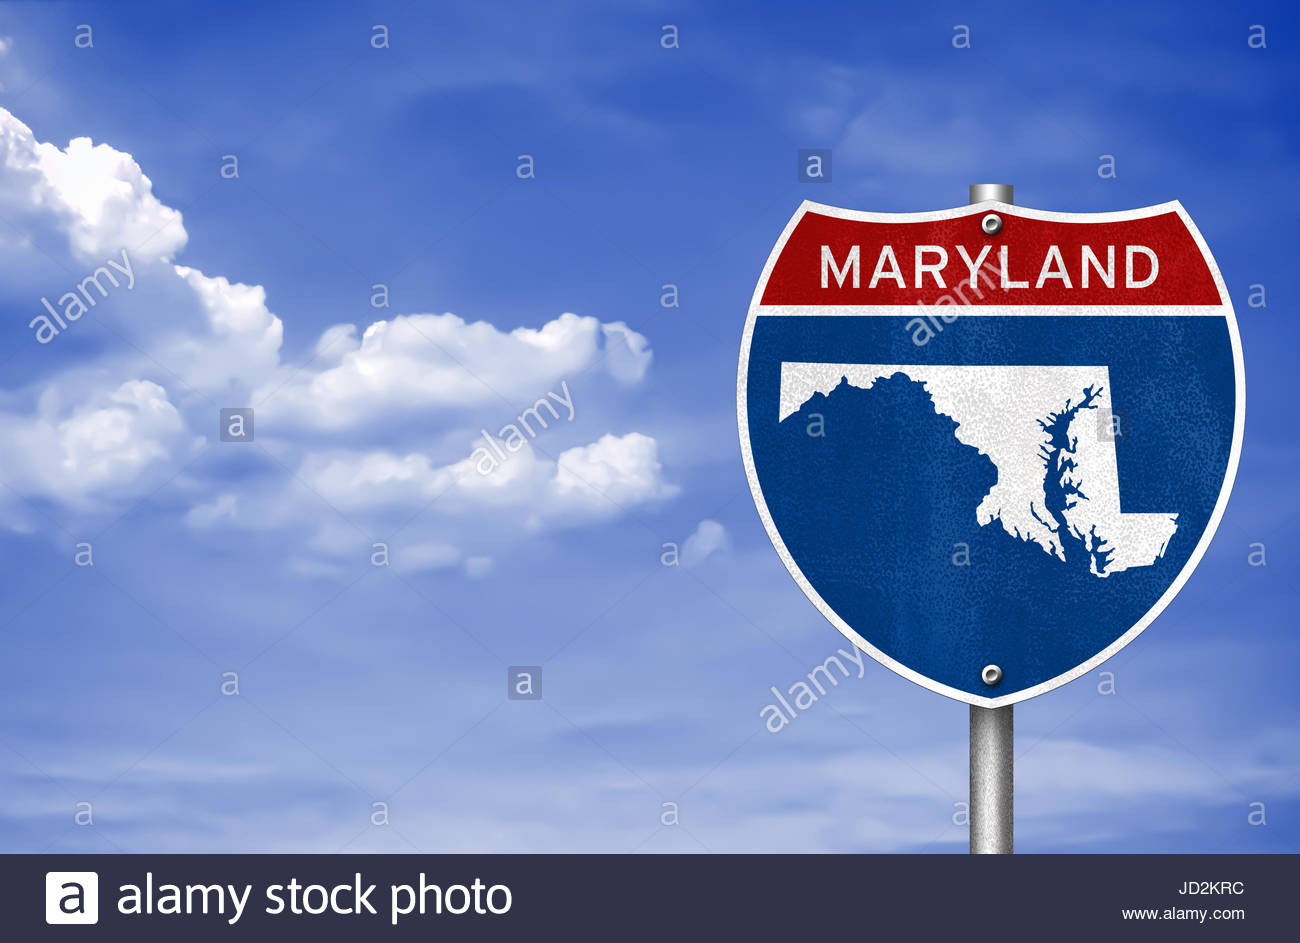 Maryland road sign map - Stock Image